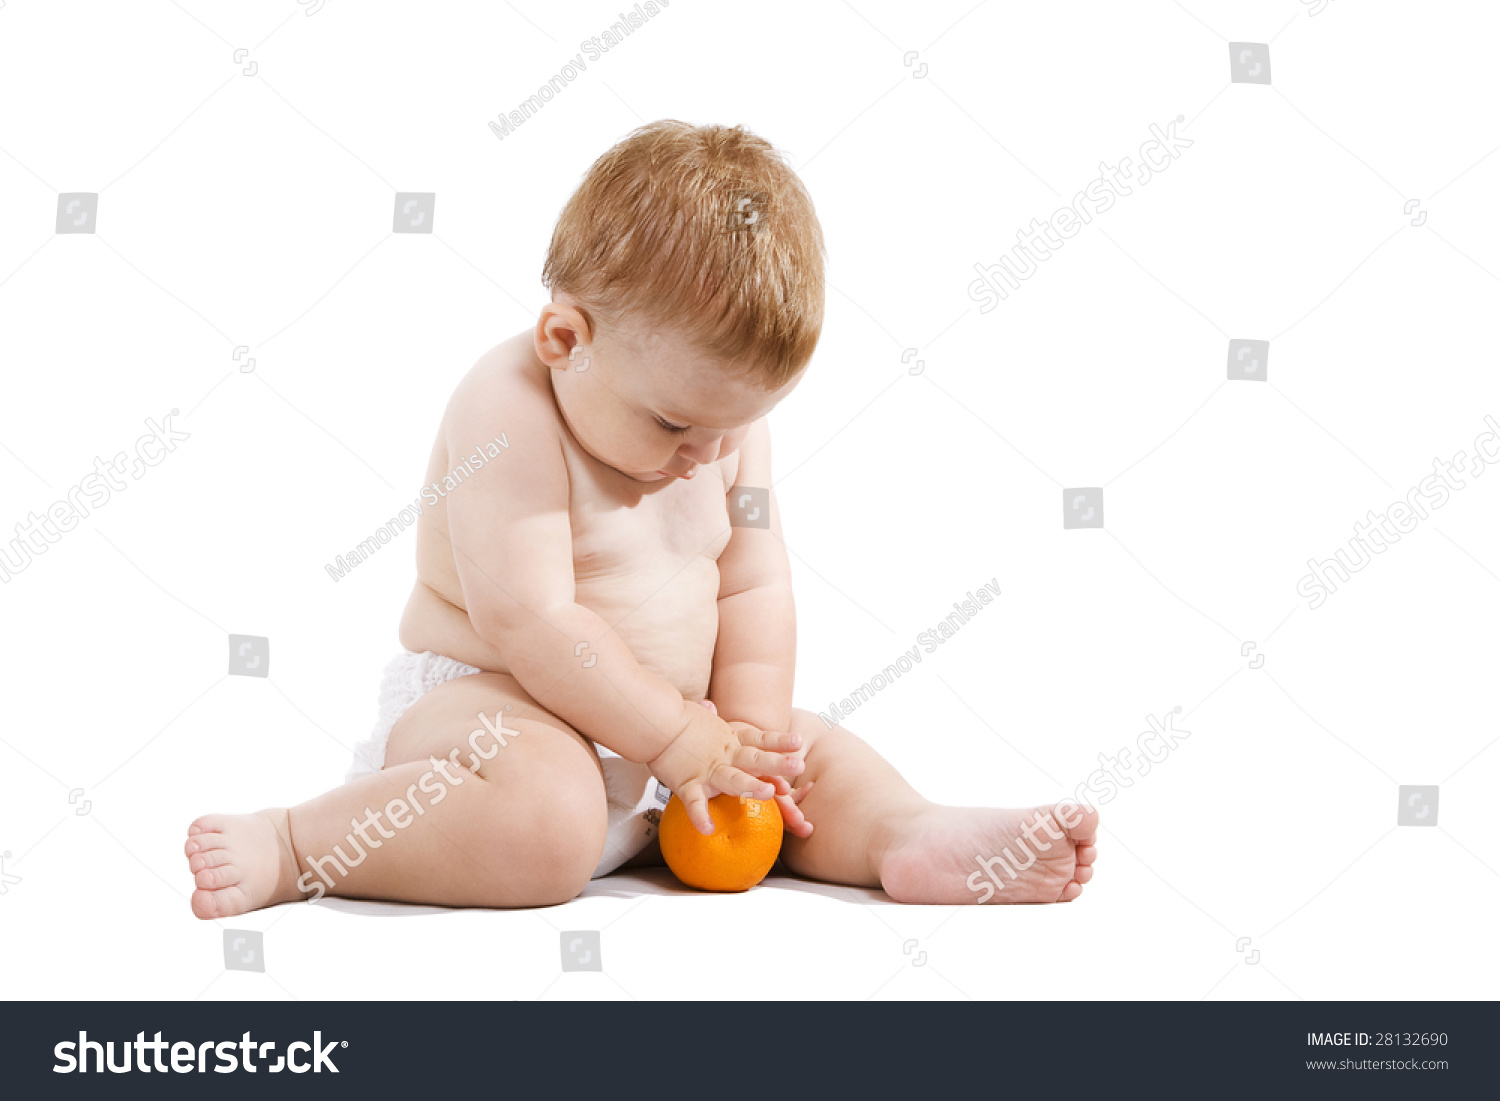 Small Ginger Baby Seating Nappy Try Stock Photo 28132690 ...